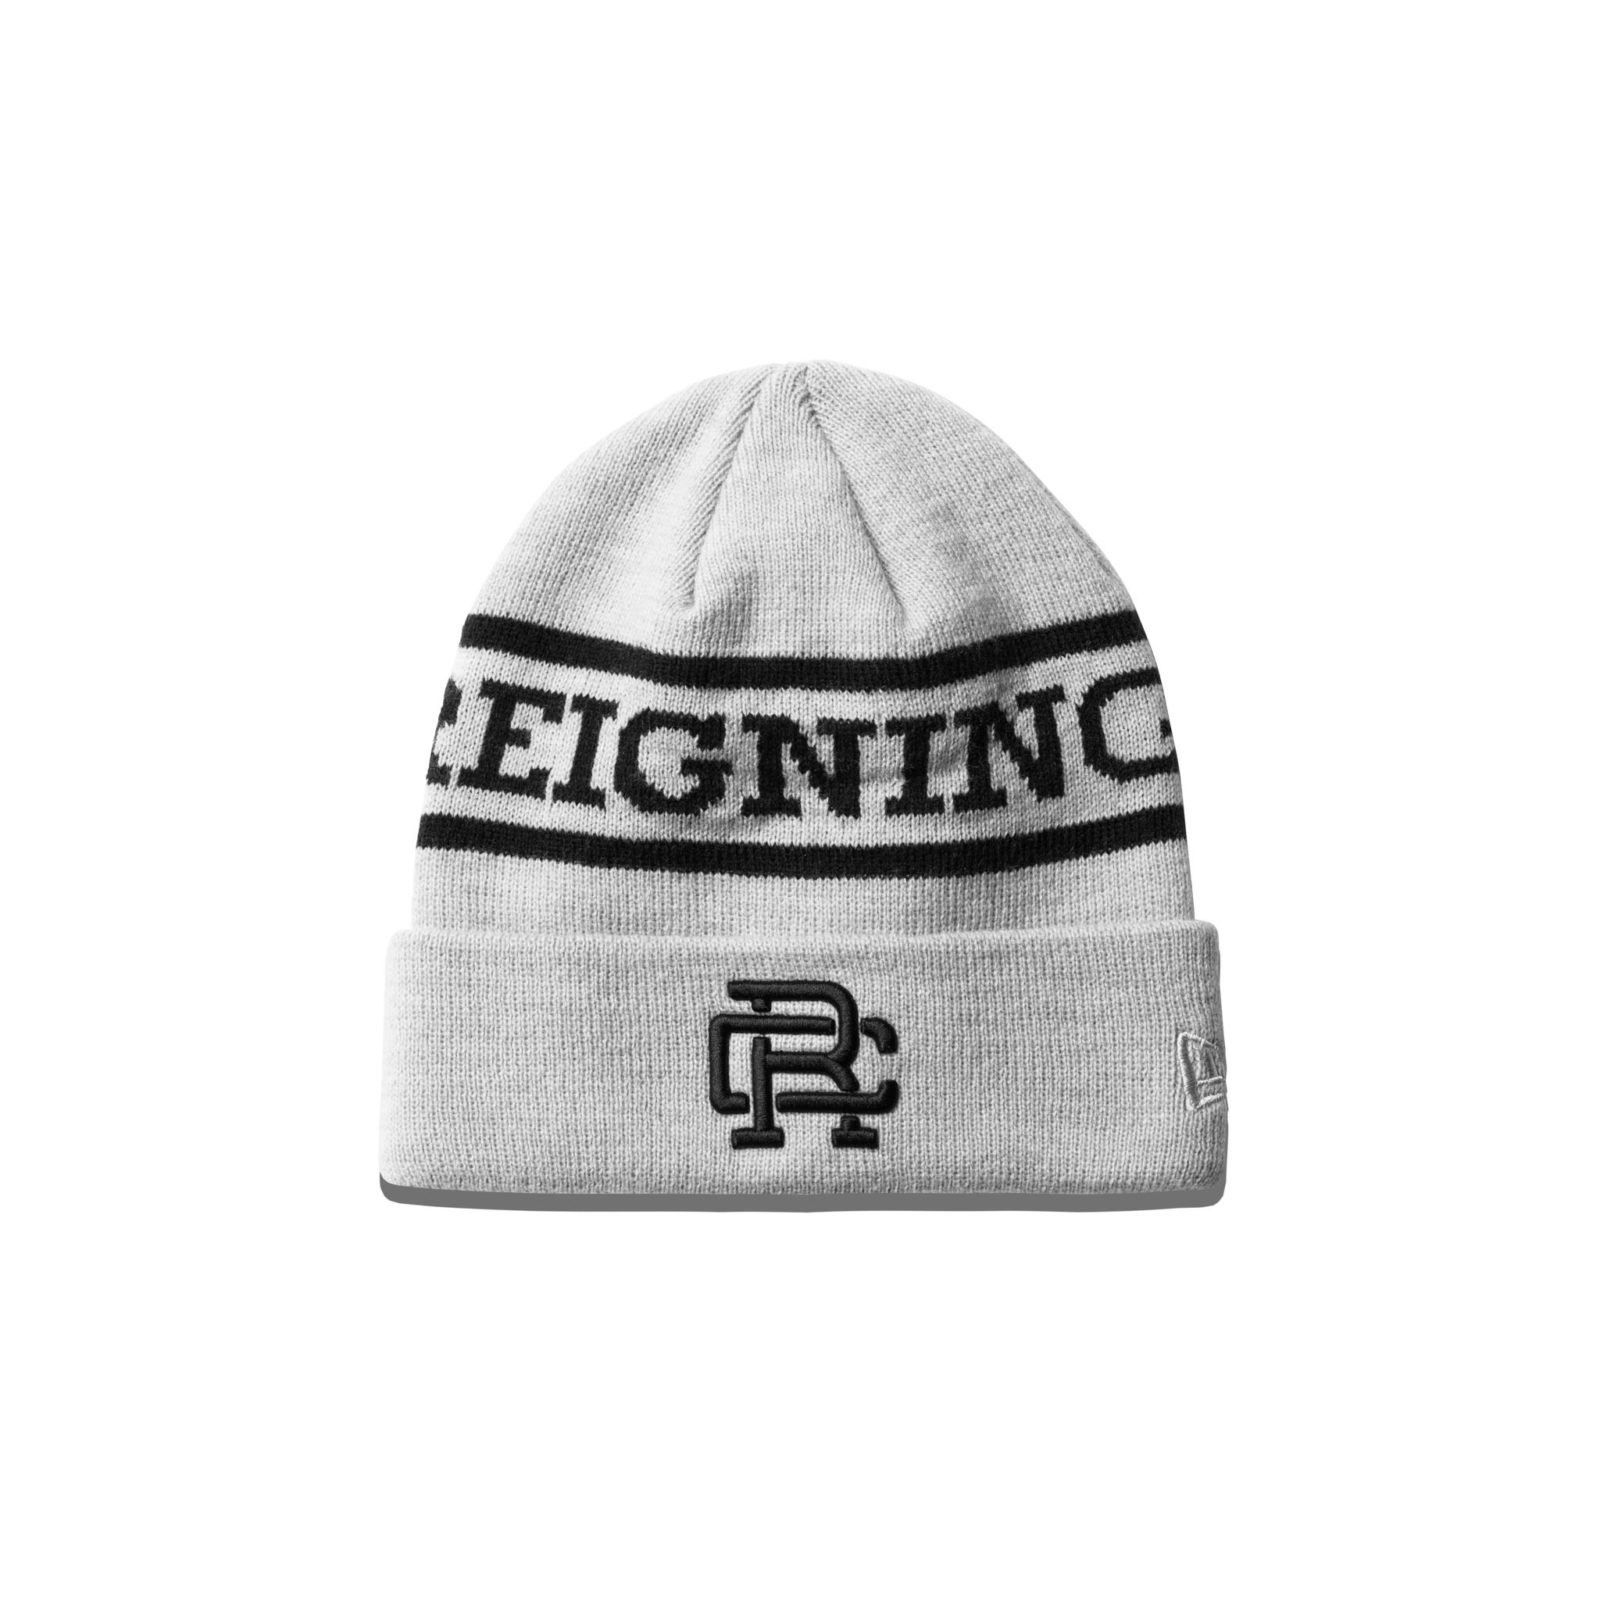 REIGNING CHAMP NEW ERA EMBROIDERED BEANIE